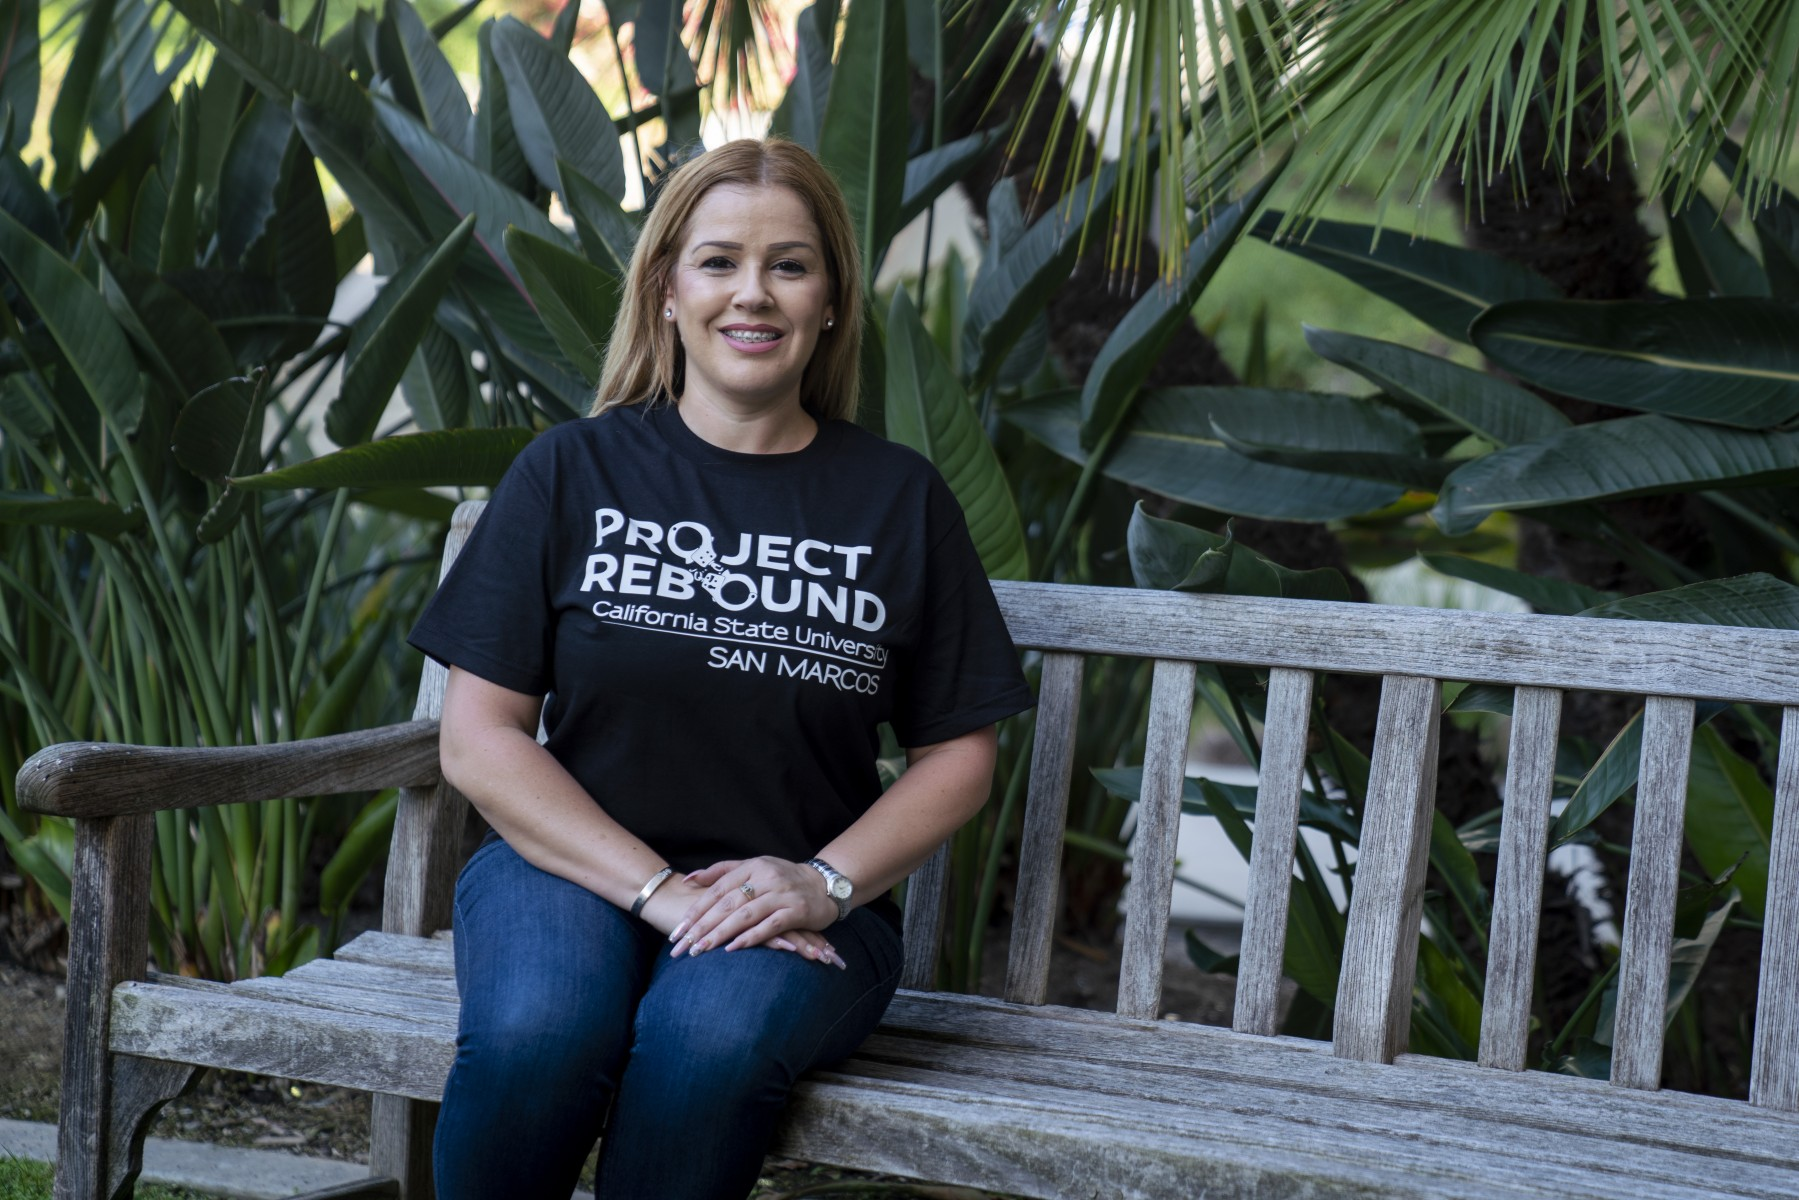 Maria Valdivia is a member of the first cohort of CSUSM's Project Rebound, a program that provides support for formerly incarcerated students. Photo by Chandler Oriente